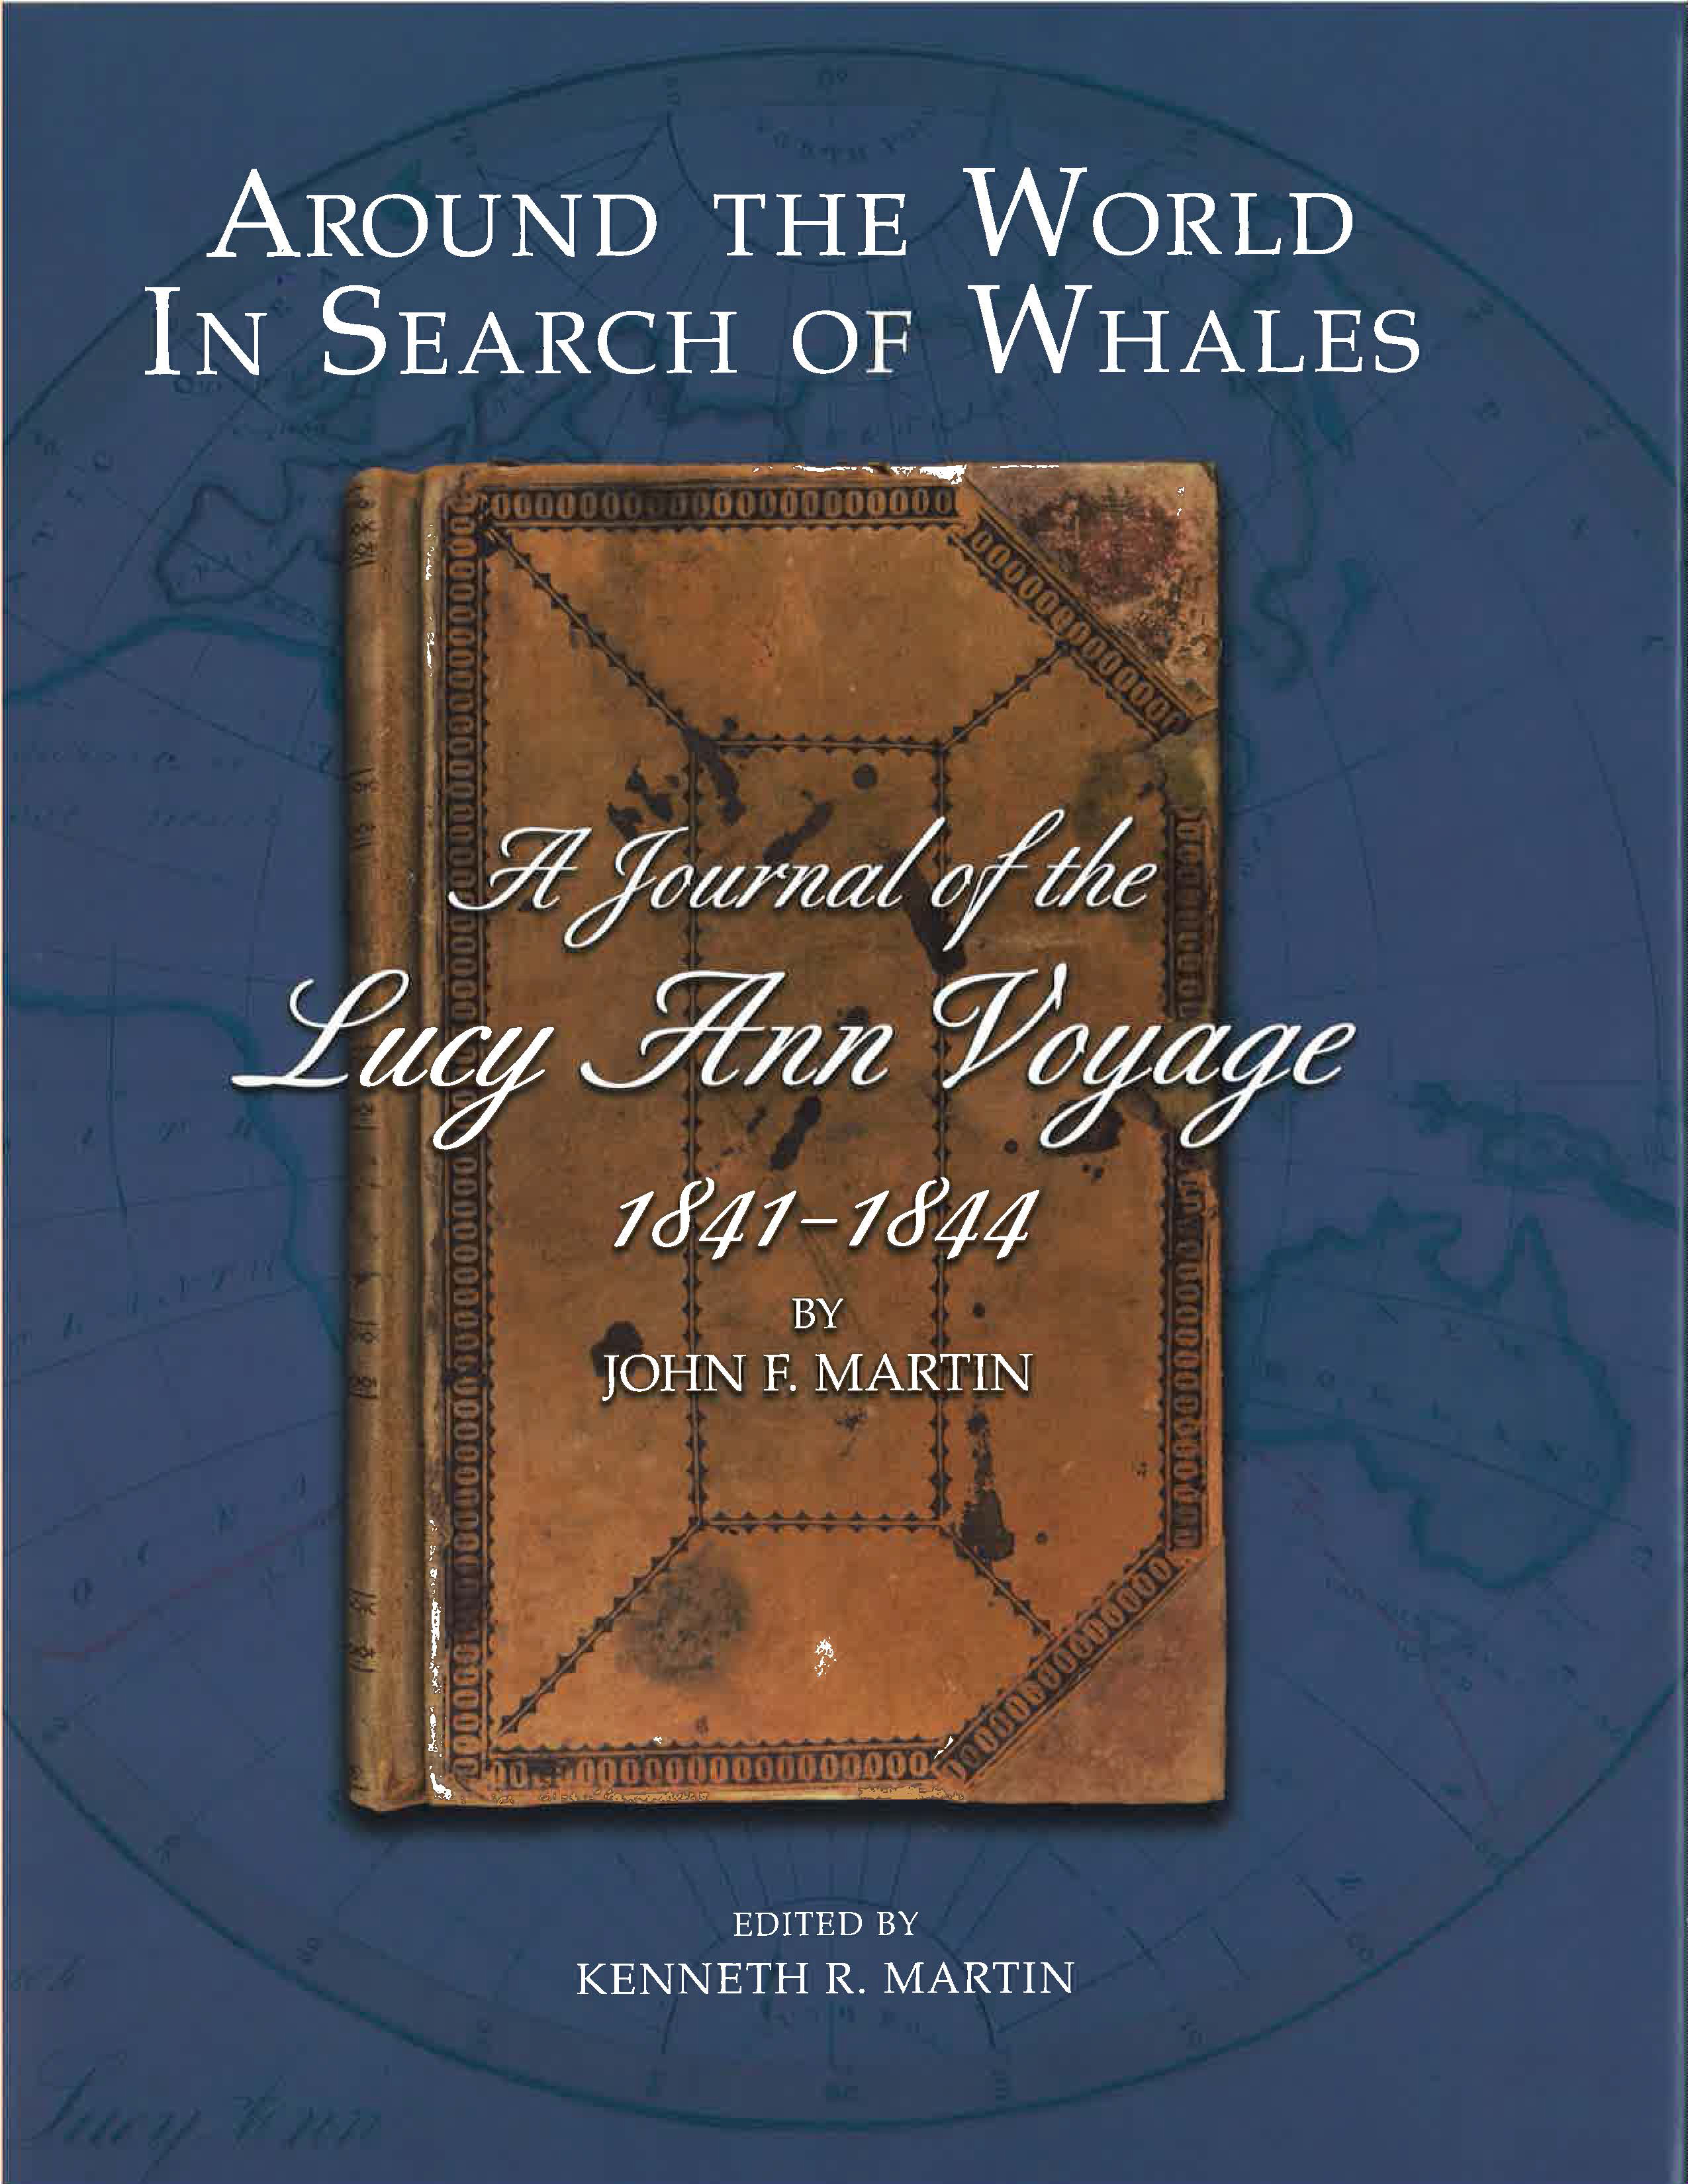 Around The World In Search of Whales, A Journal of the Lucy Ann Voyage, by John F. Martin, 2016, 236 pp., HARDCOVER - Prices reflect the cost of the book PLUS S&H fee of $7.50..